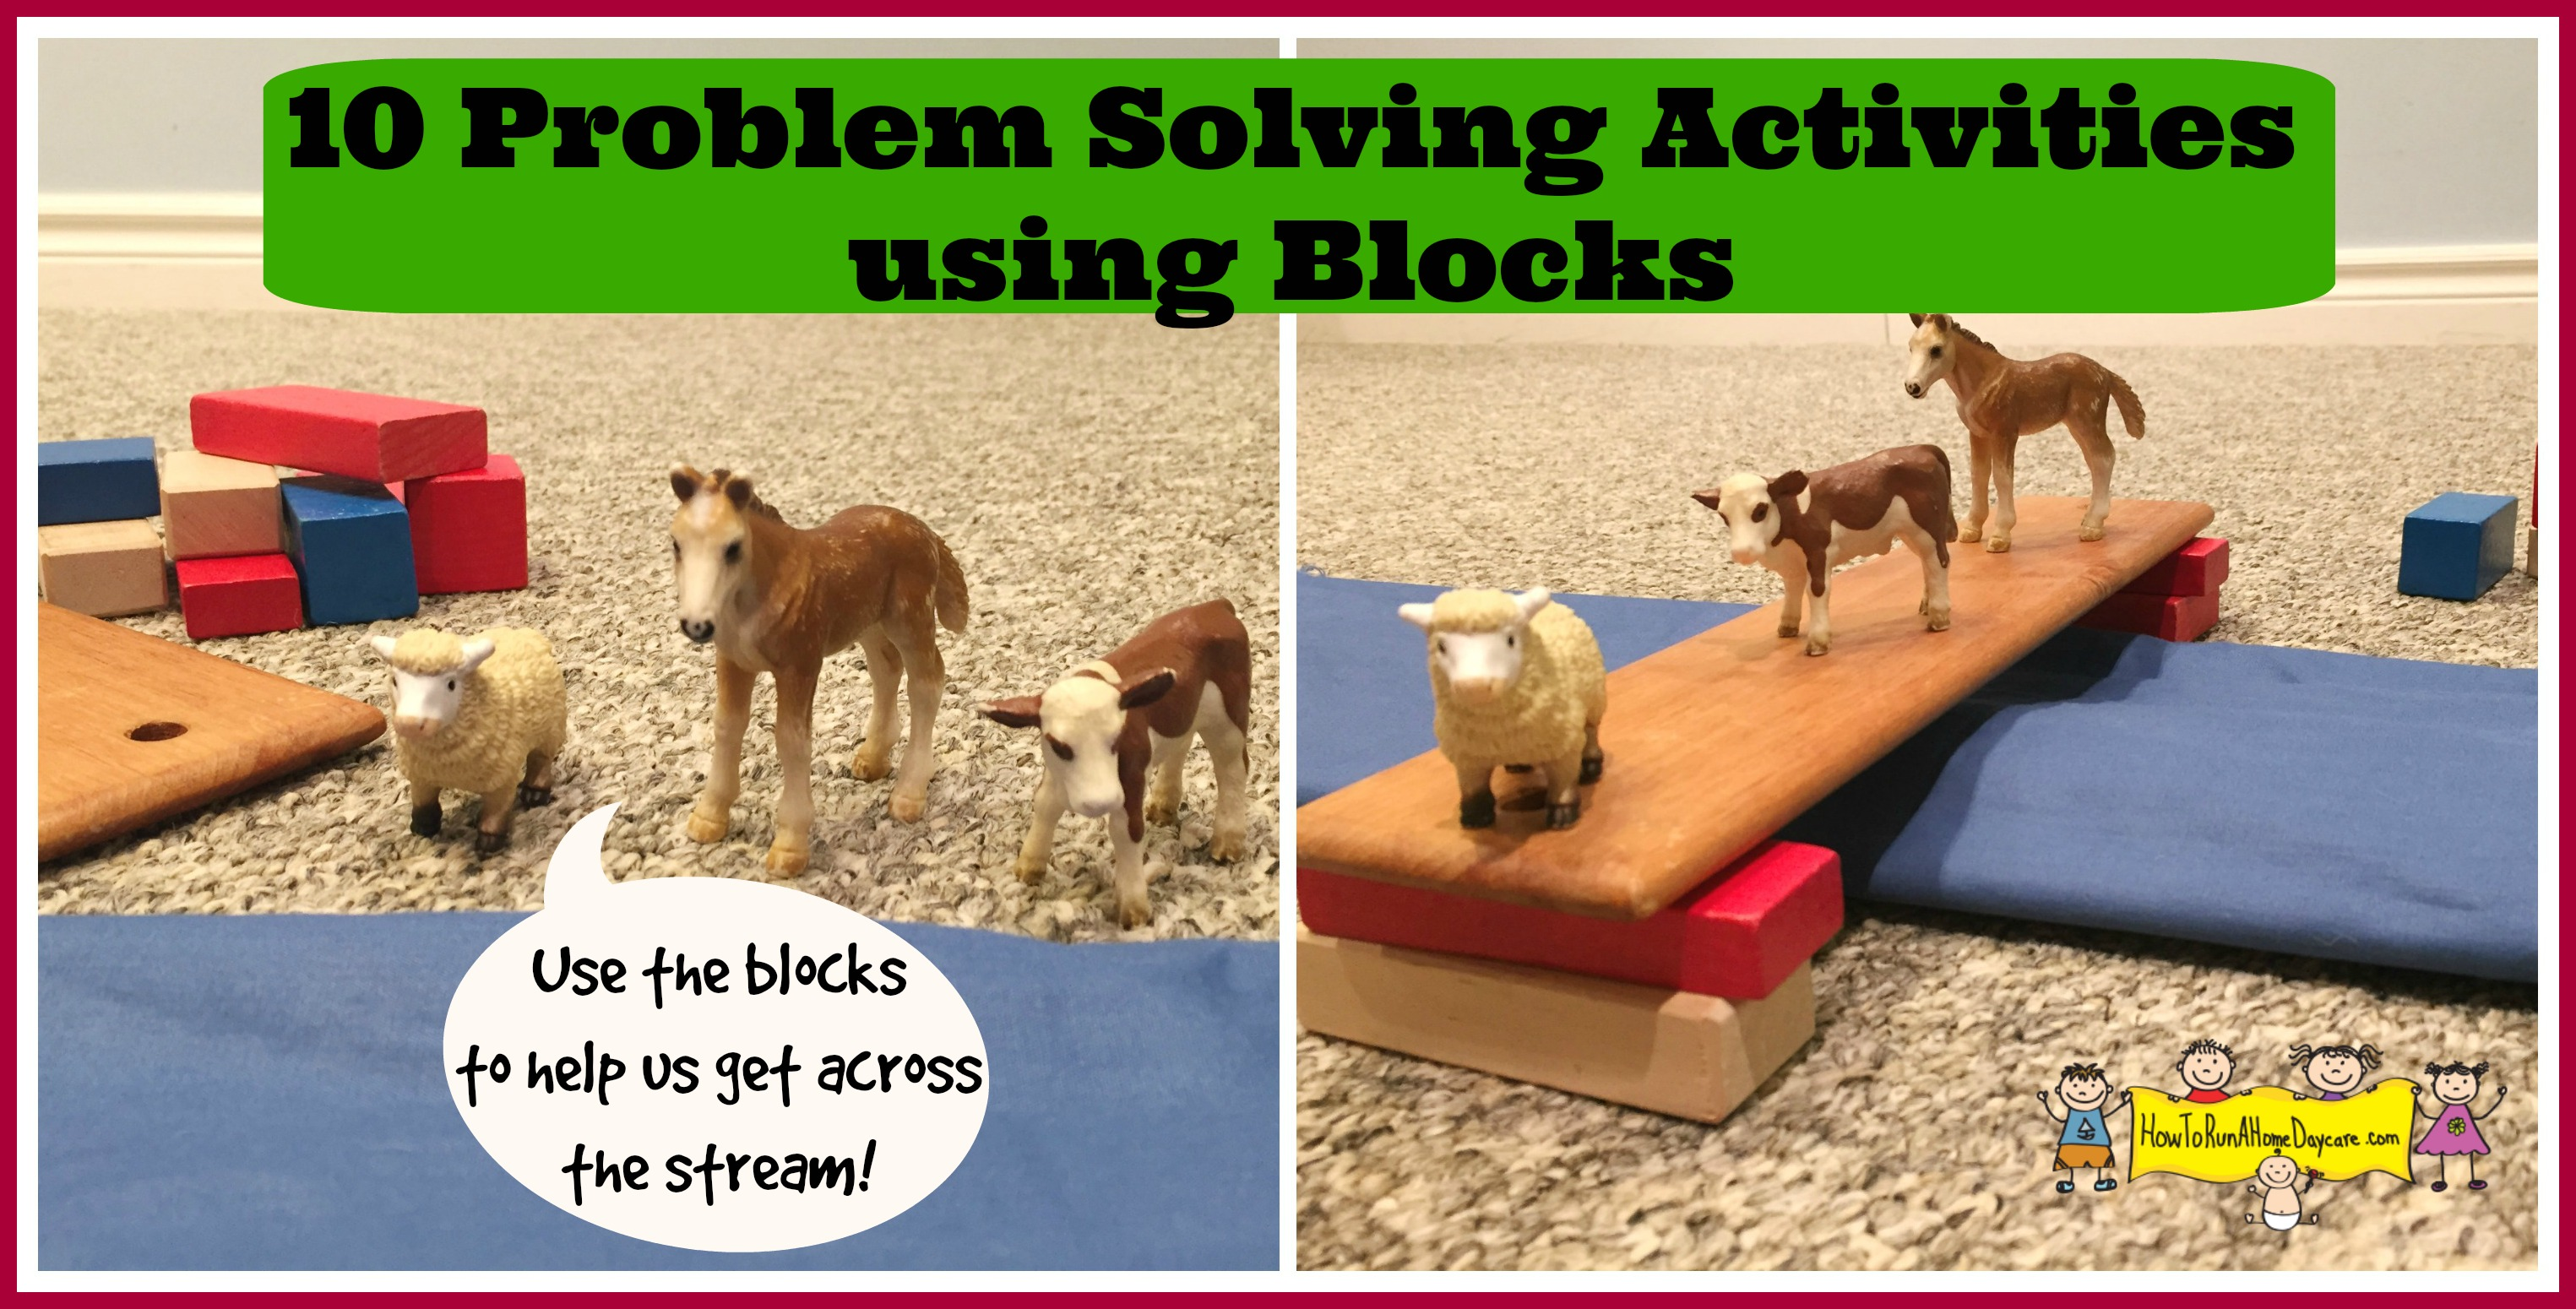 10 problem solving activities using blocks for 25 7 yr olds how block party altavistaventures Image collections